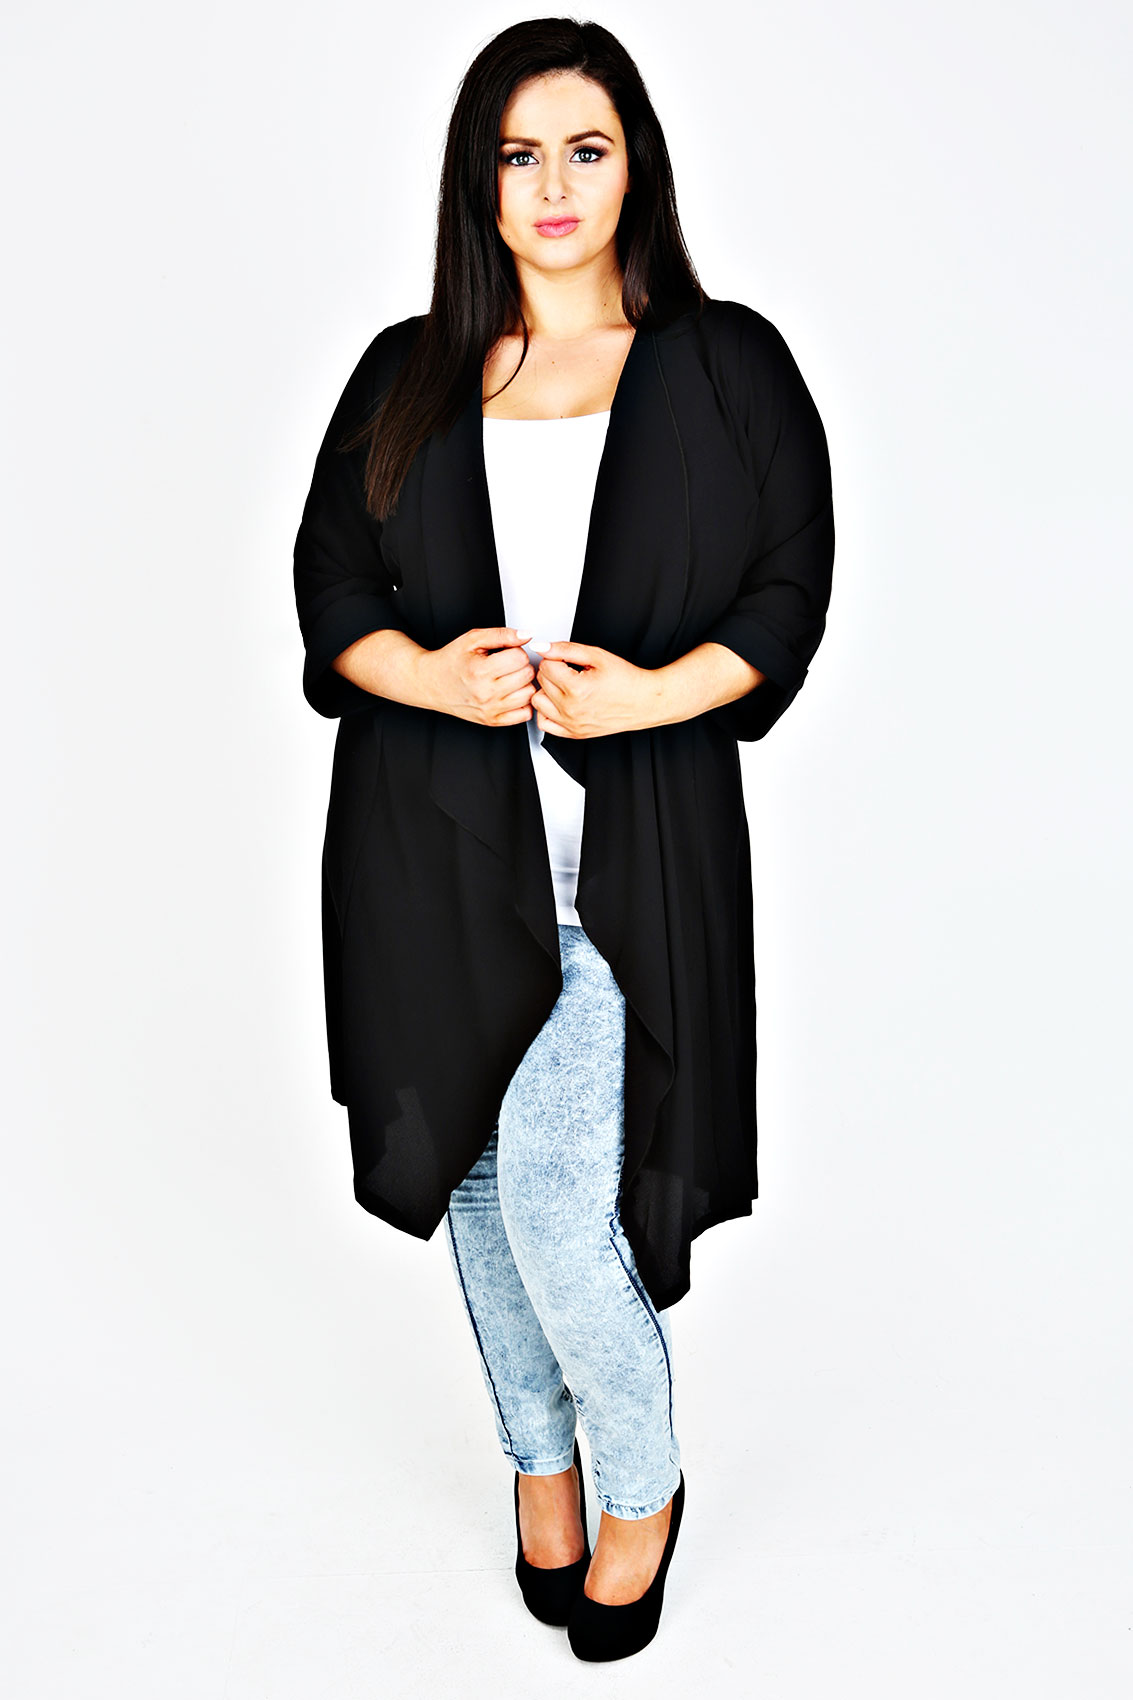 A wide selection of women's plus size tops in so many styles from Ambrose Wilson in sizes